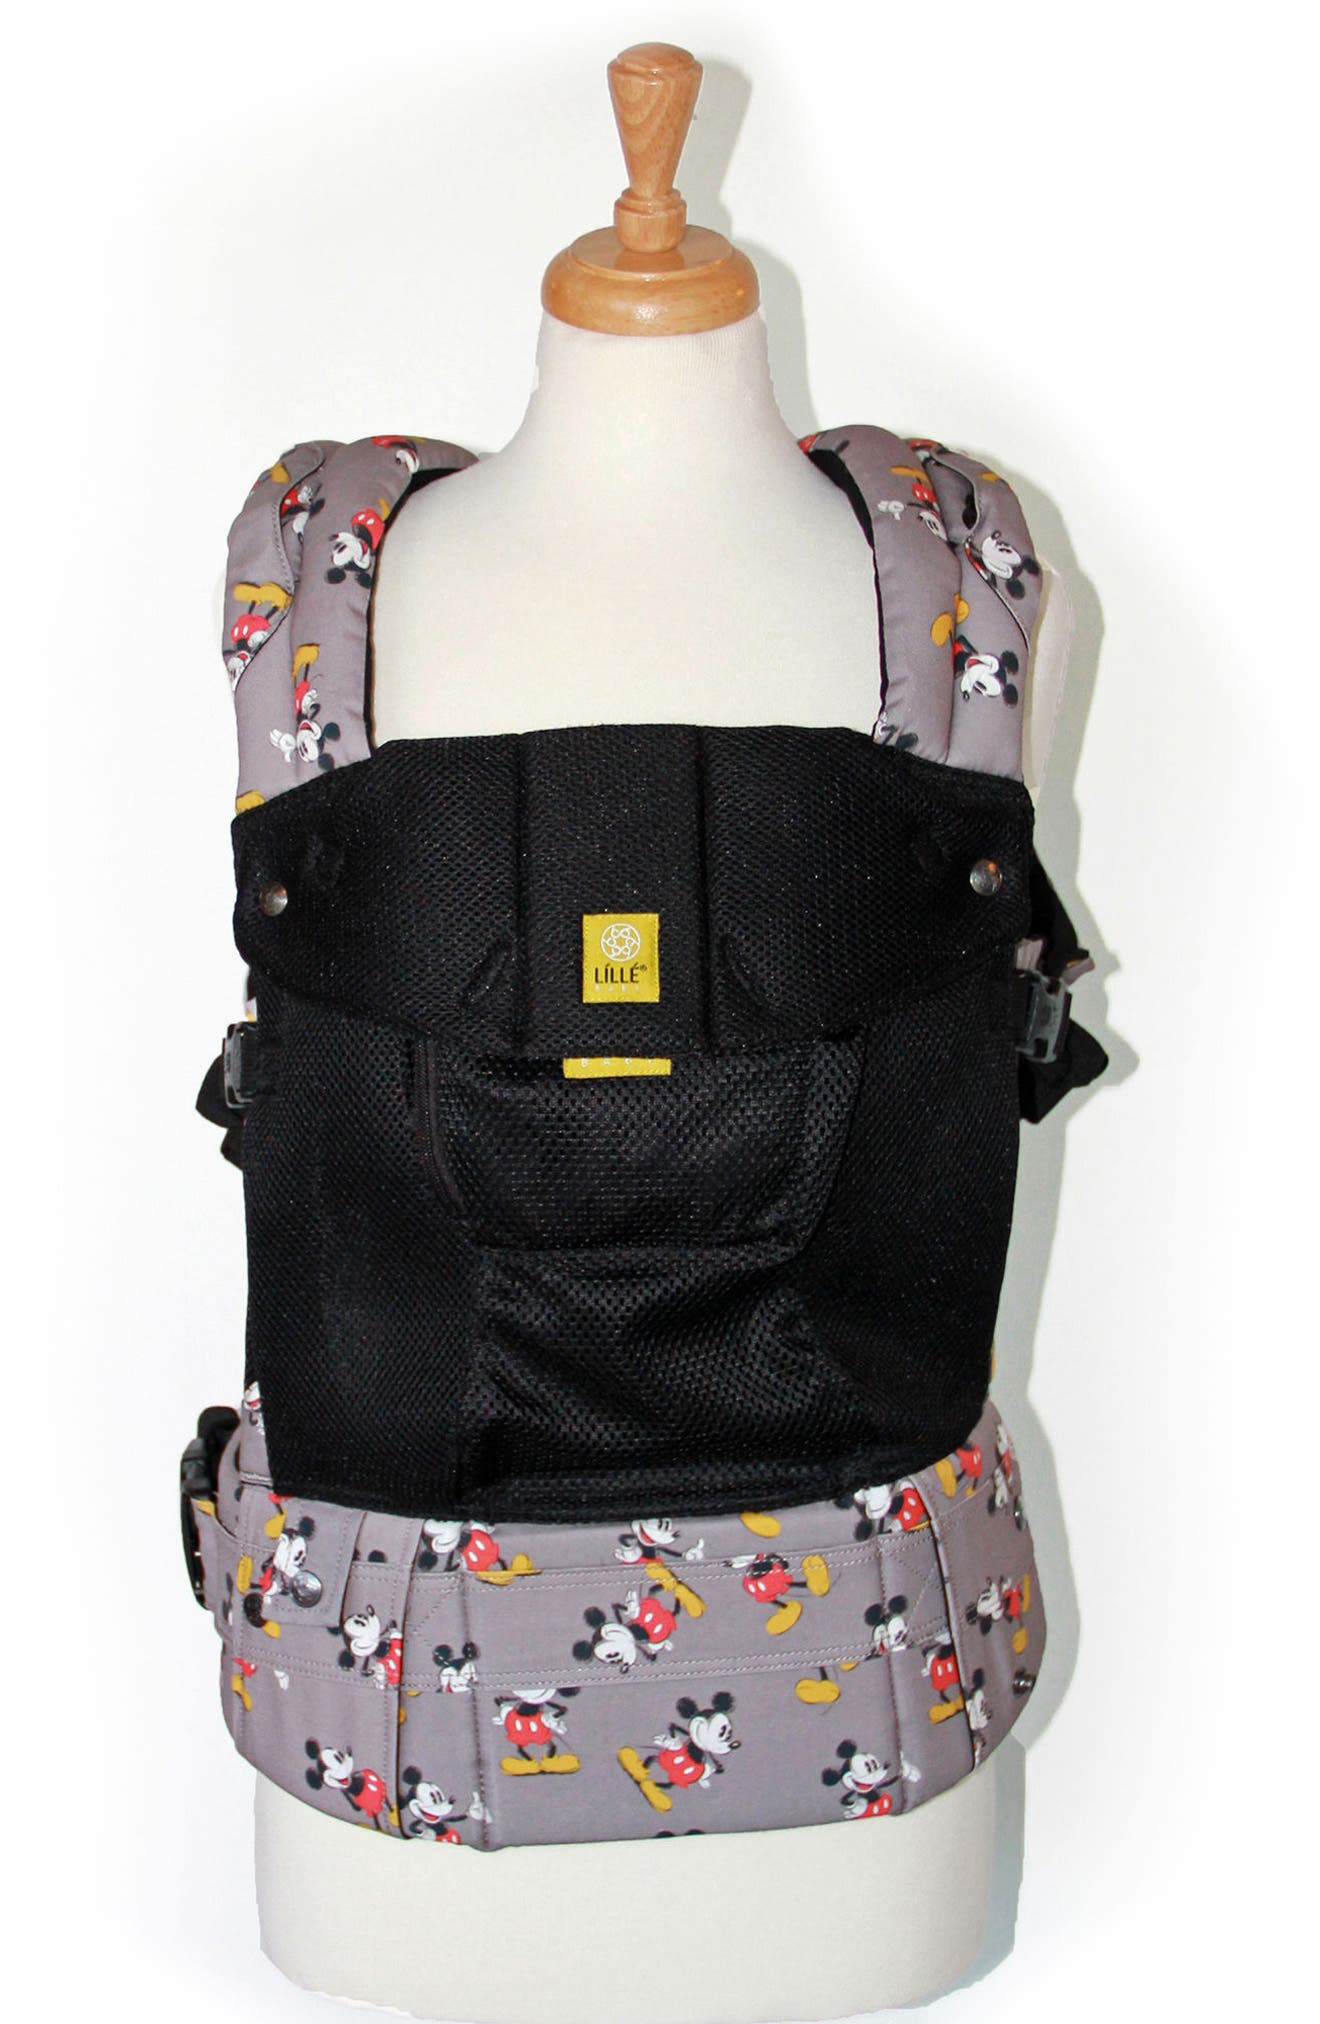 x Disney<sup>®</sup> Complete Airflow - Mickey Mouse Classic Baby Carrier,                             Alternate thumbnail 2, color,                             BLACK